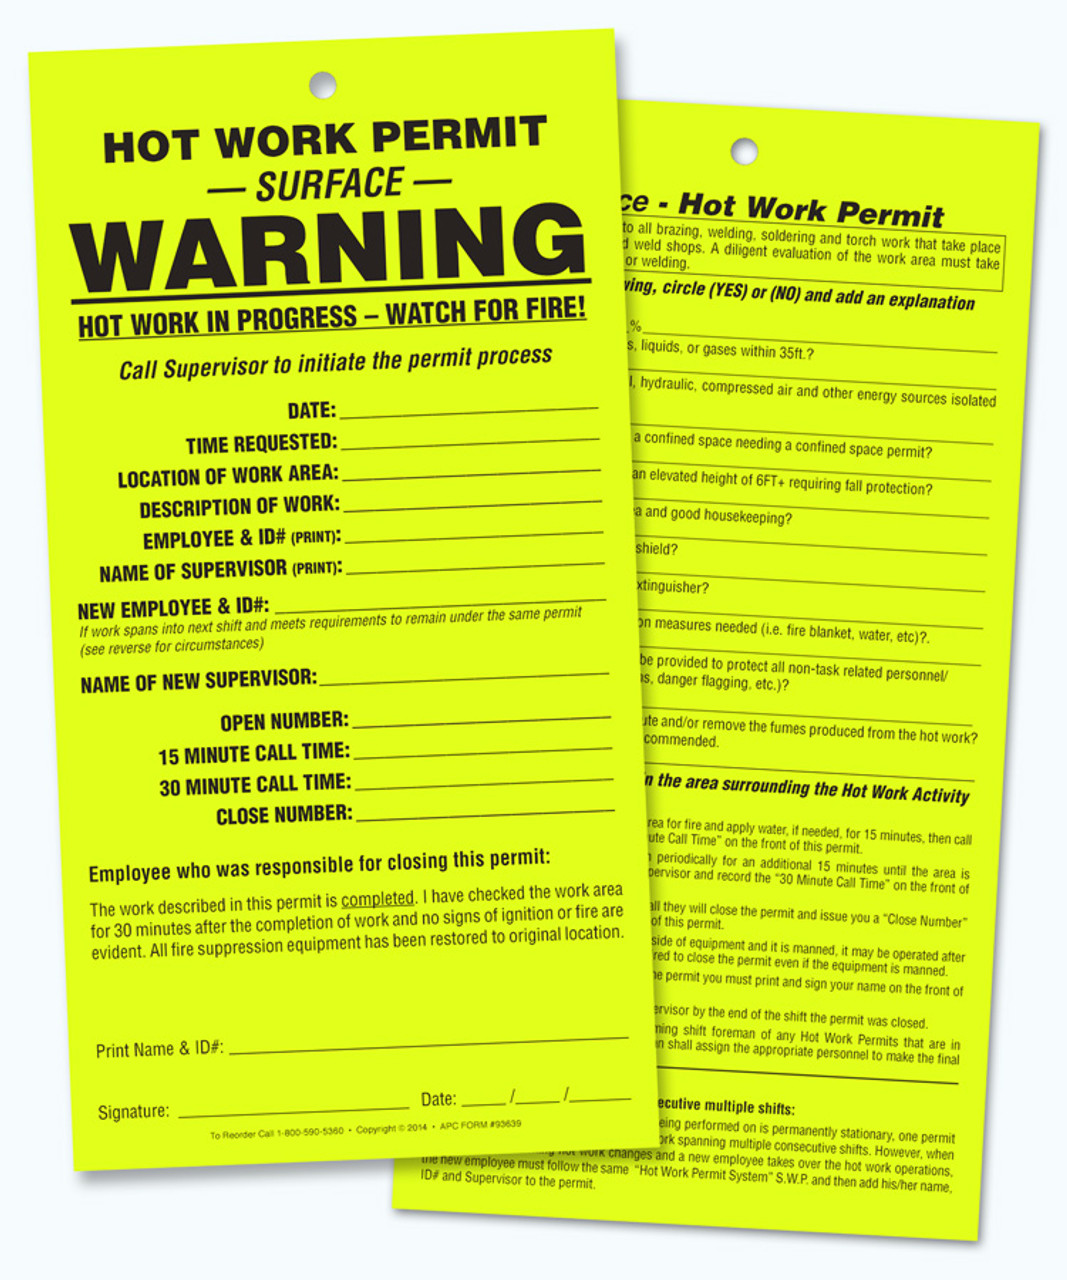 APC 93639: Hot Work Permit – SURFACE